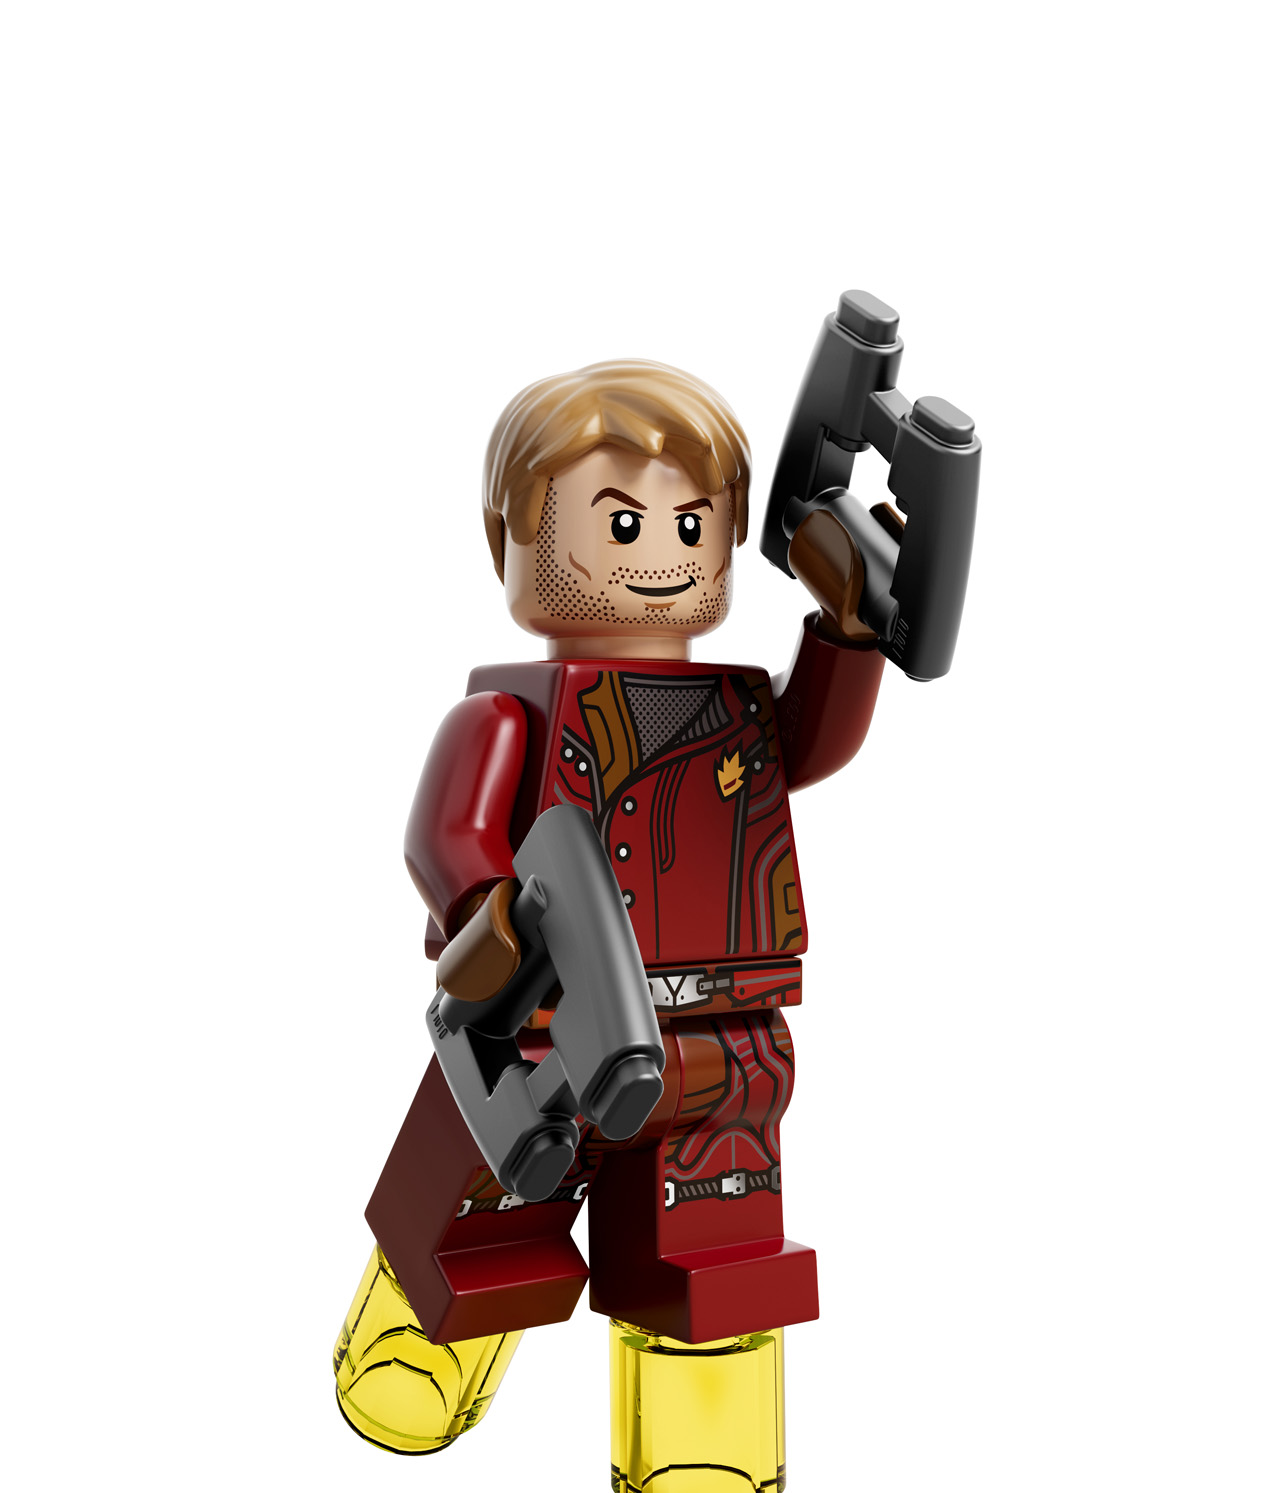 LEGO-Minifigure-Star-Lord-Guardians-of-the-Galaxy.jpg